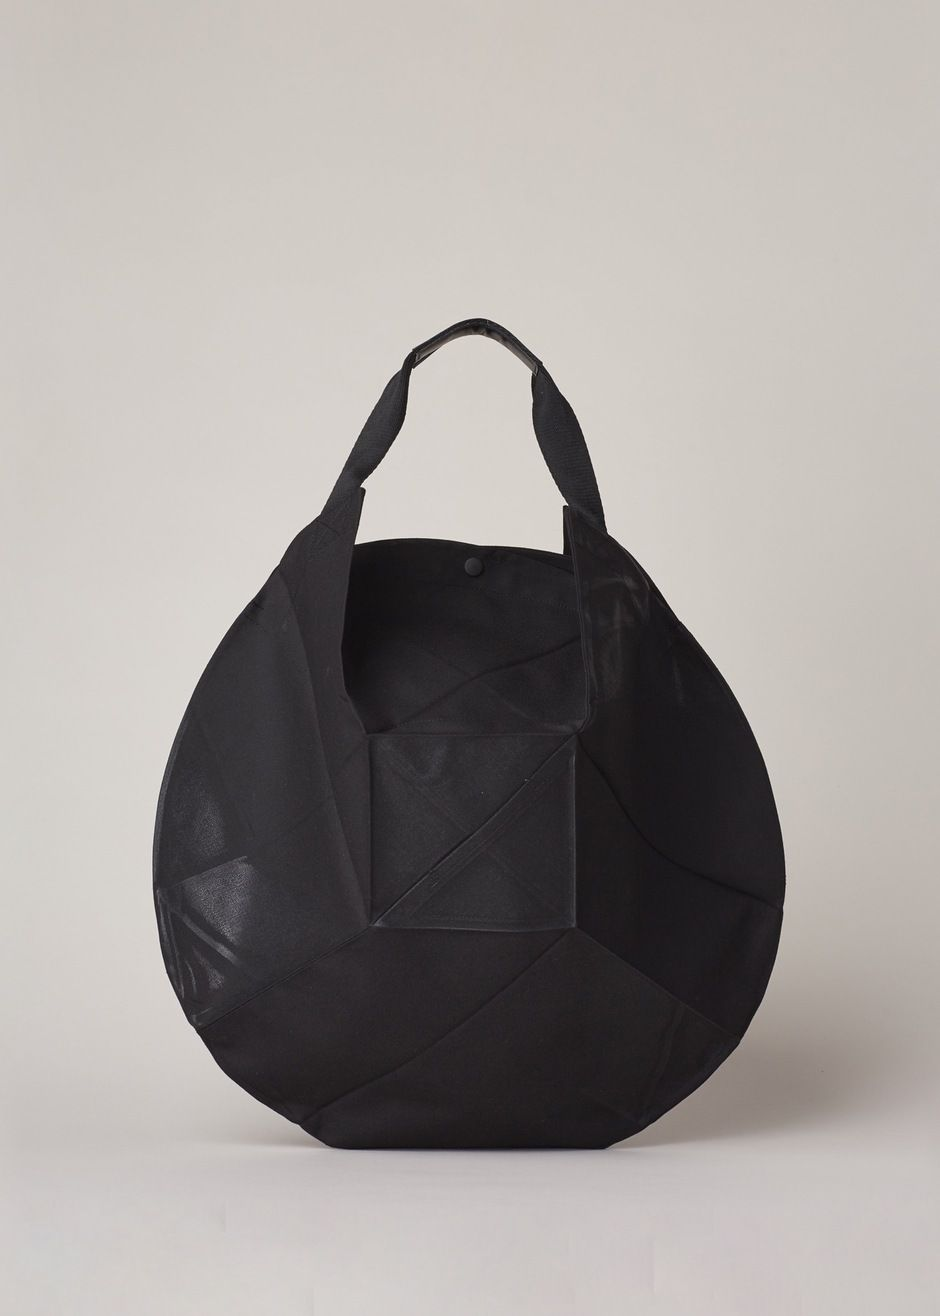 8e57c15aa5 Issey Miyake Origami Bag (Black Luster) - Rounded geometric origami folded  bag in black coated canvas with a snap closure at top. Cowhide